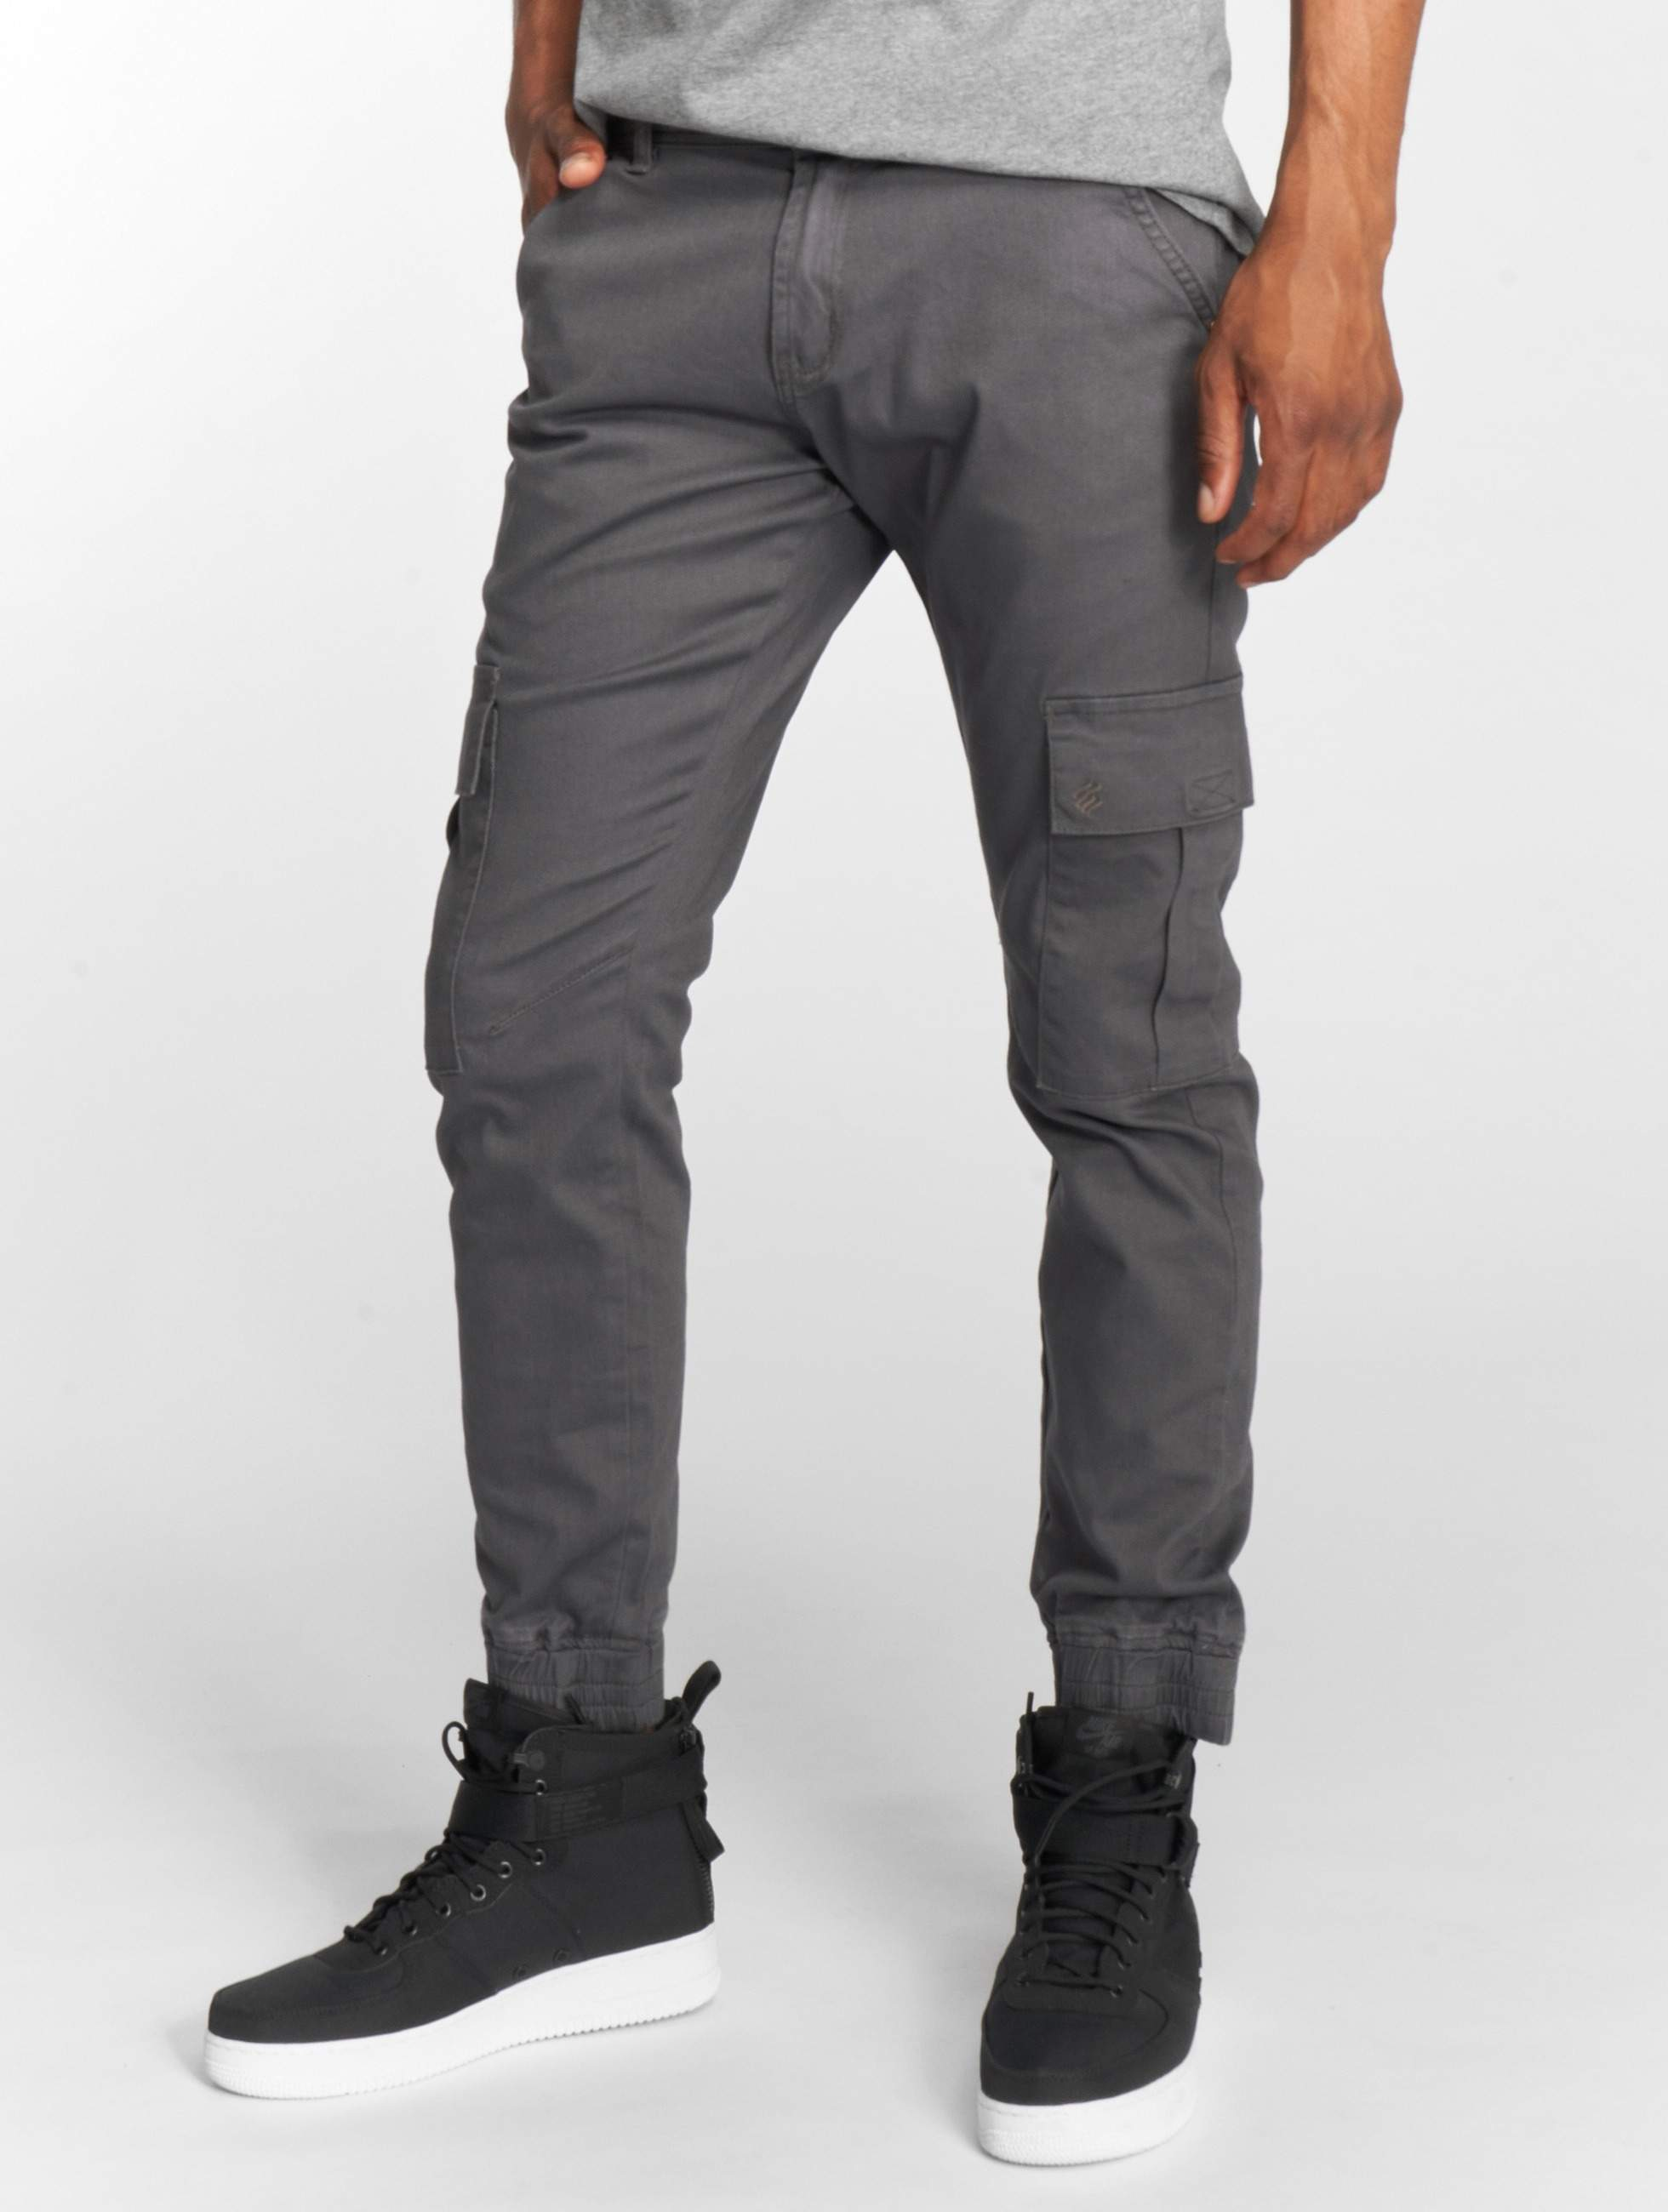 Rocawear / Cargo Cargo Fit in grey W 31